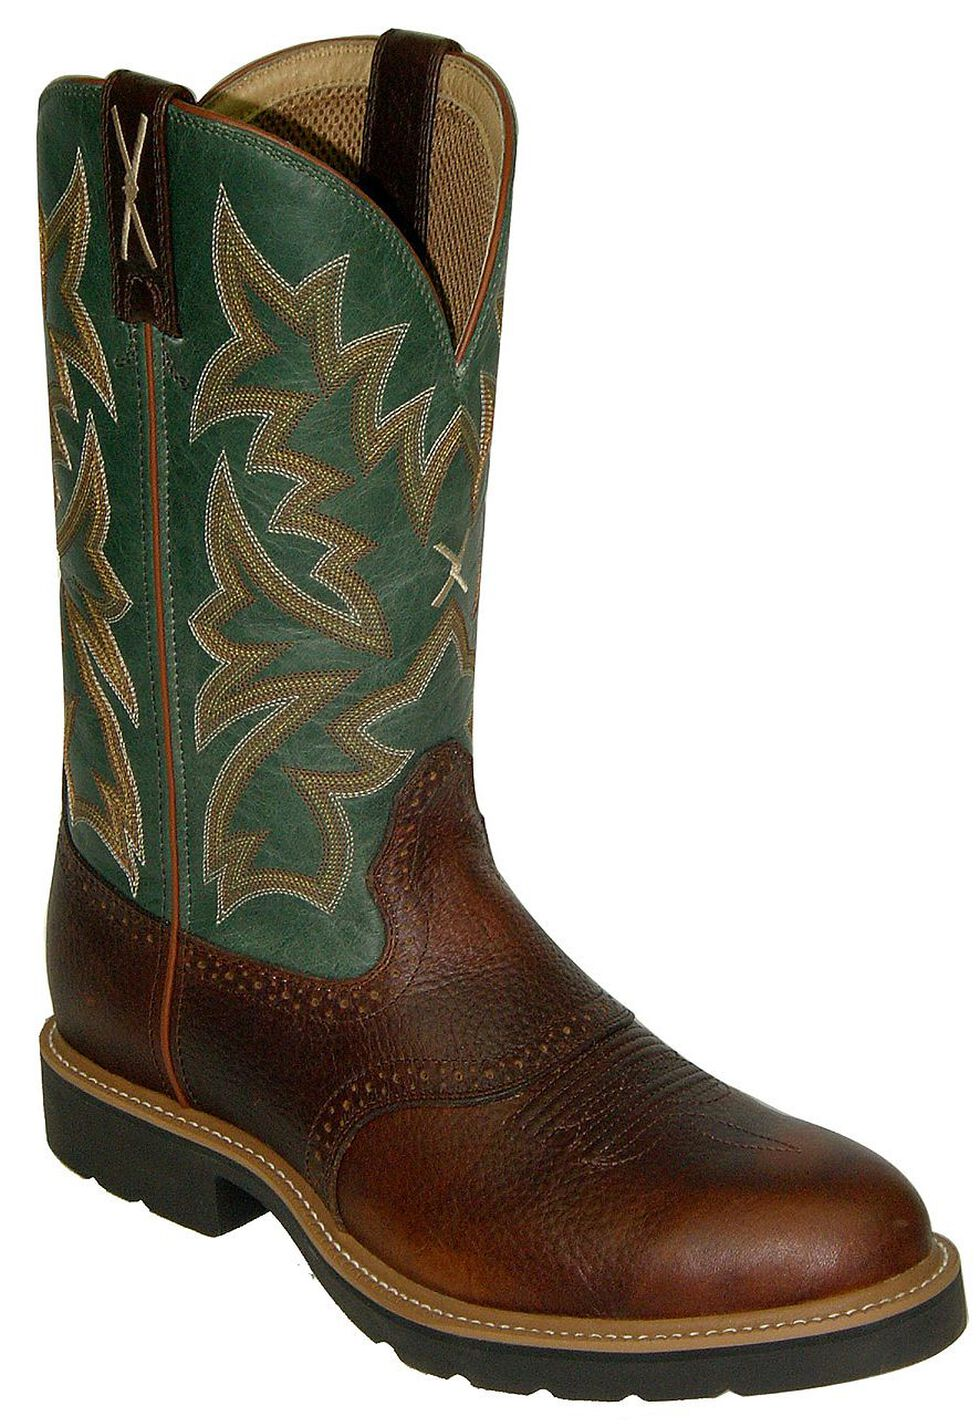 Twisted X Saddle Vamp Pull-On Work Boots - Steel Toe, Cognac, hi-res